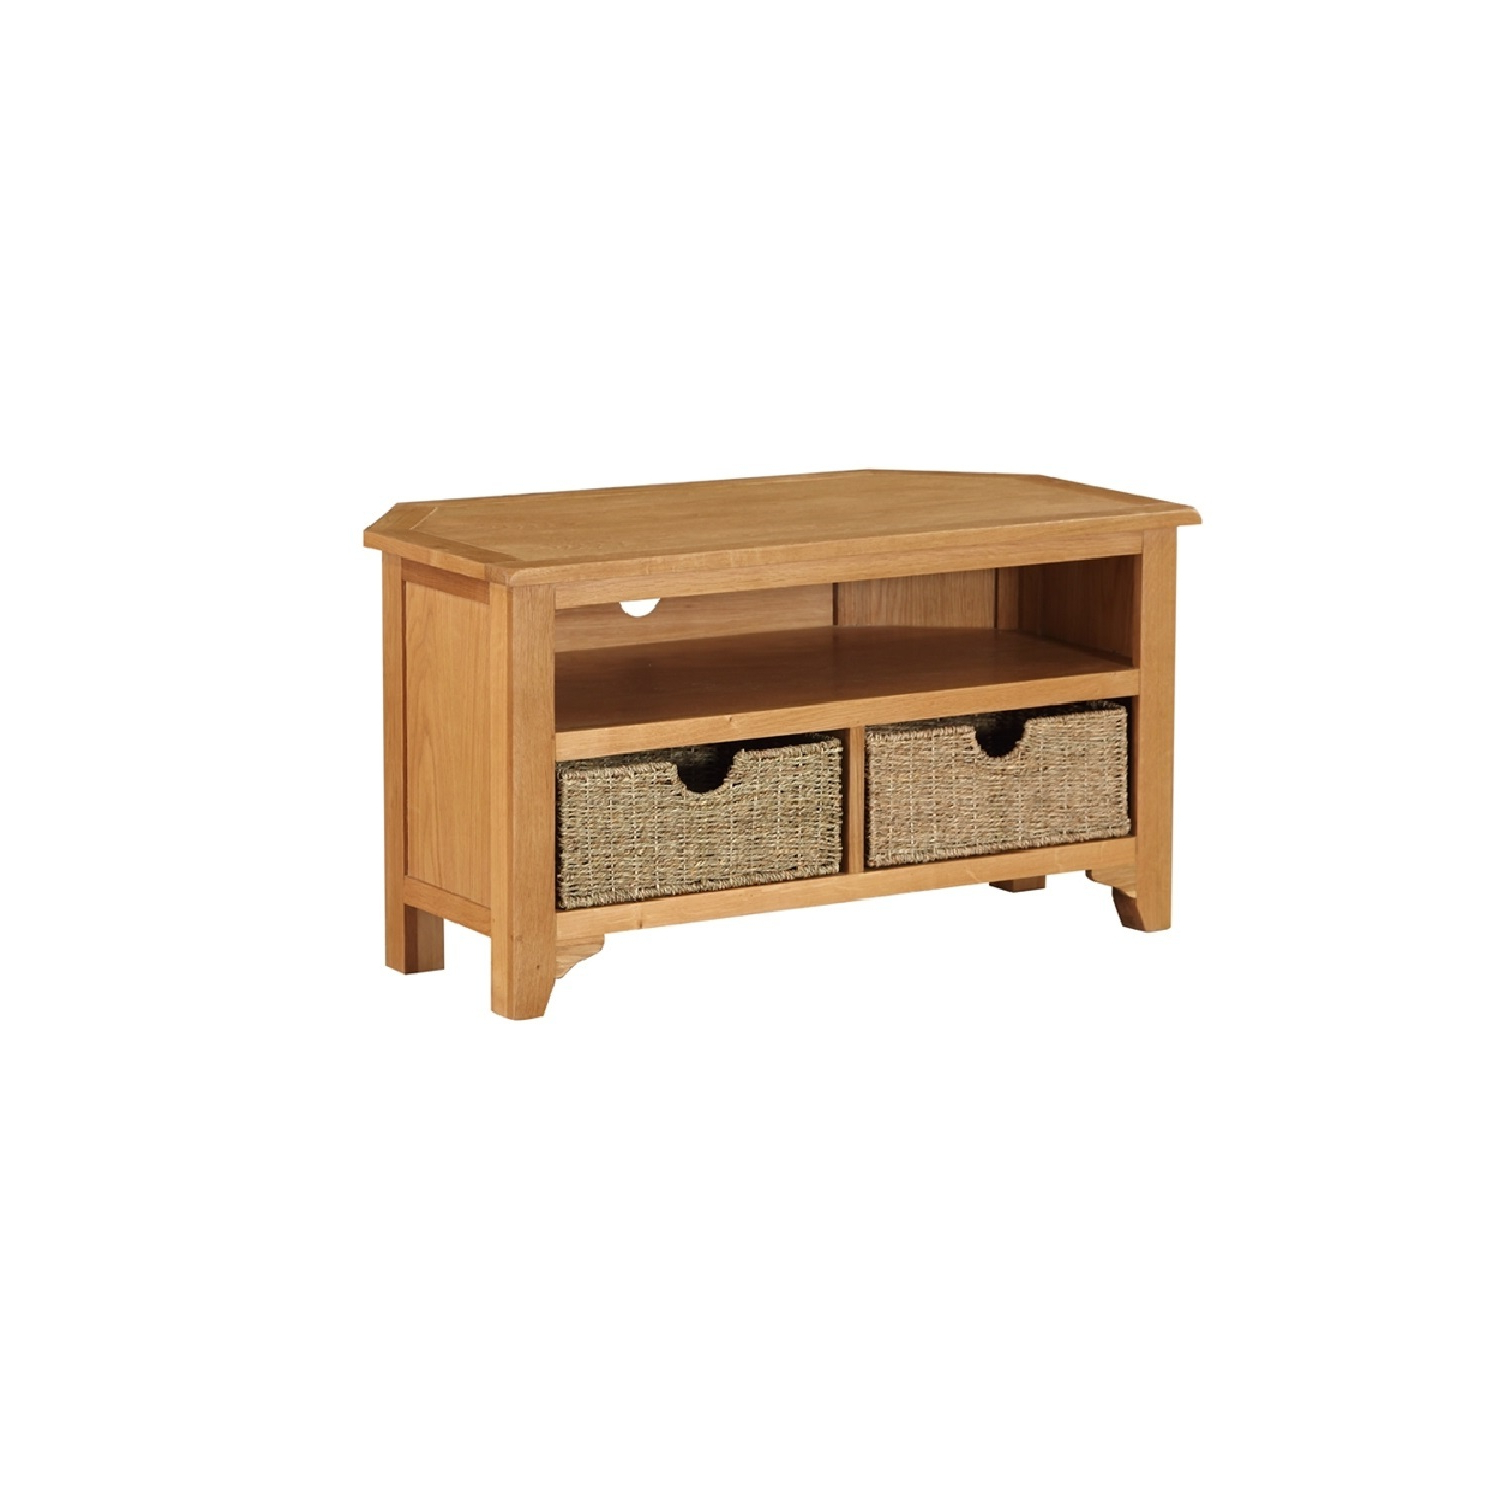 Most Up To Date Kansas Small Corner Tv Unit With Baskets With Small Corner Tv Cabinets (View 6 of 20)